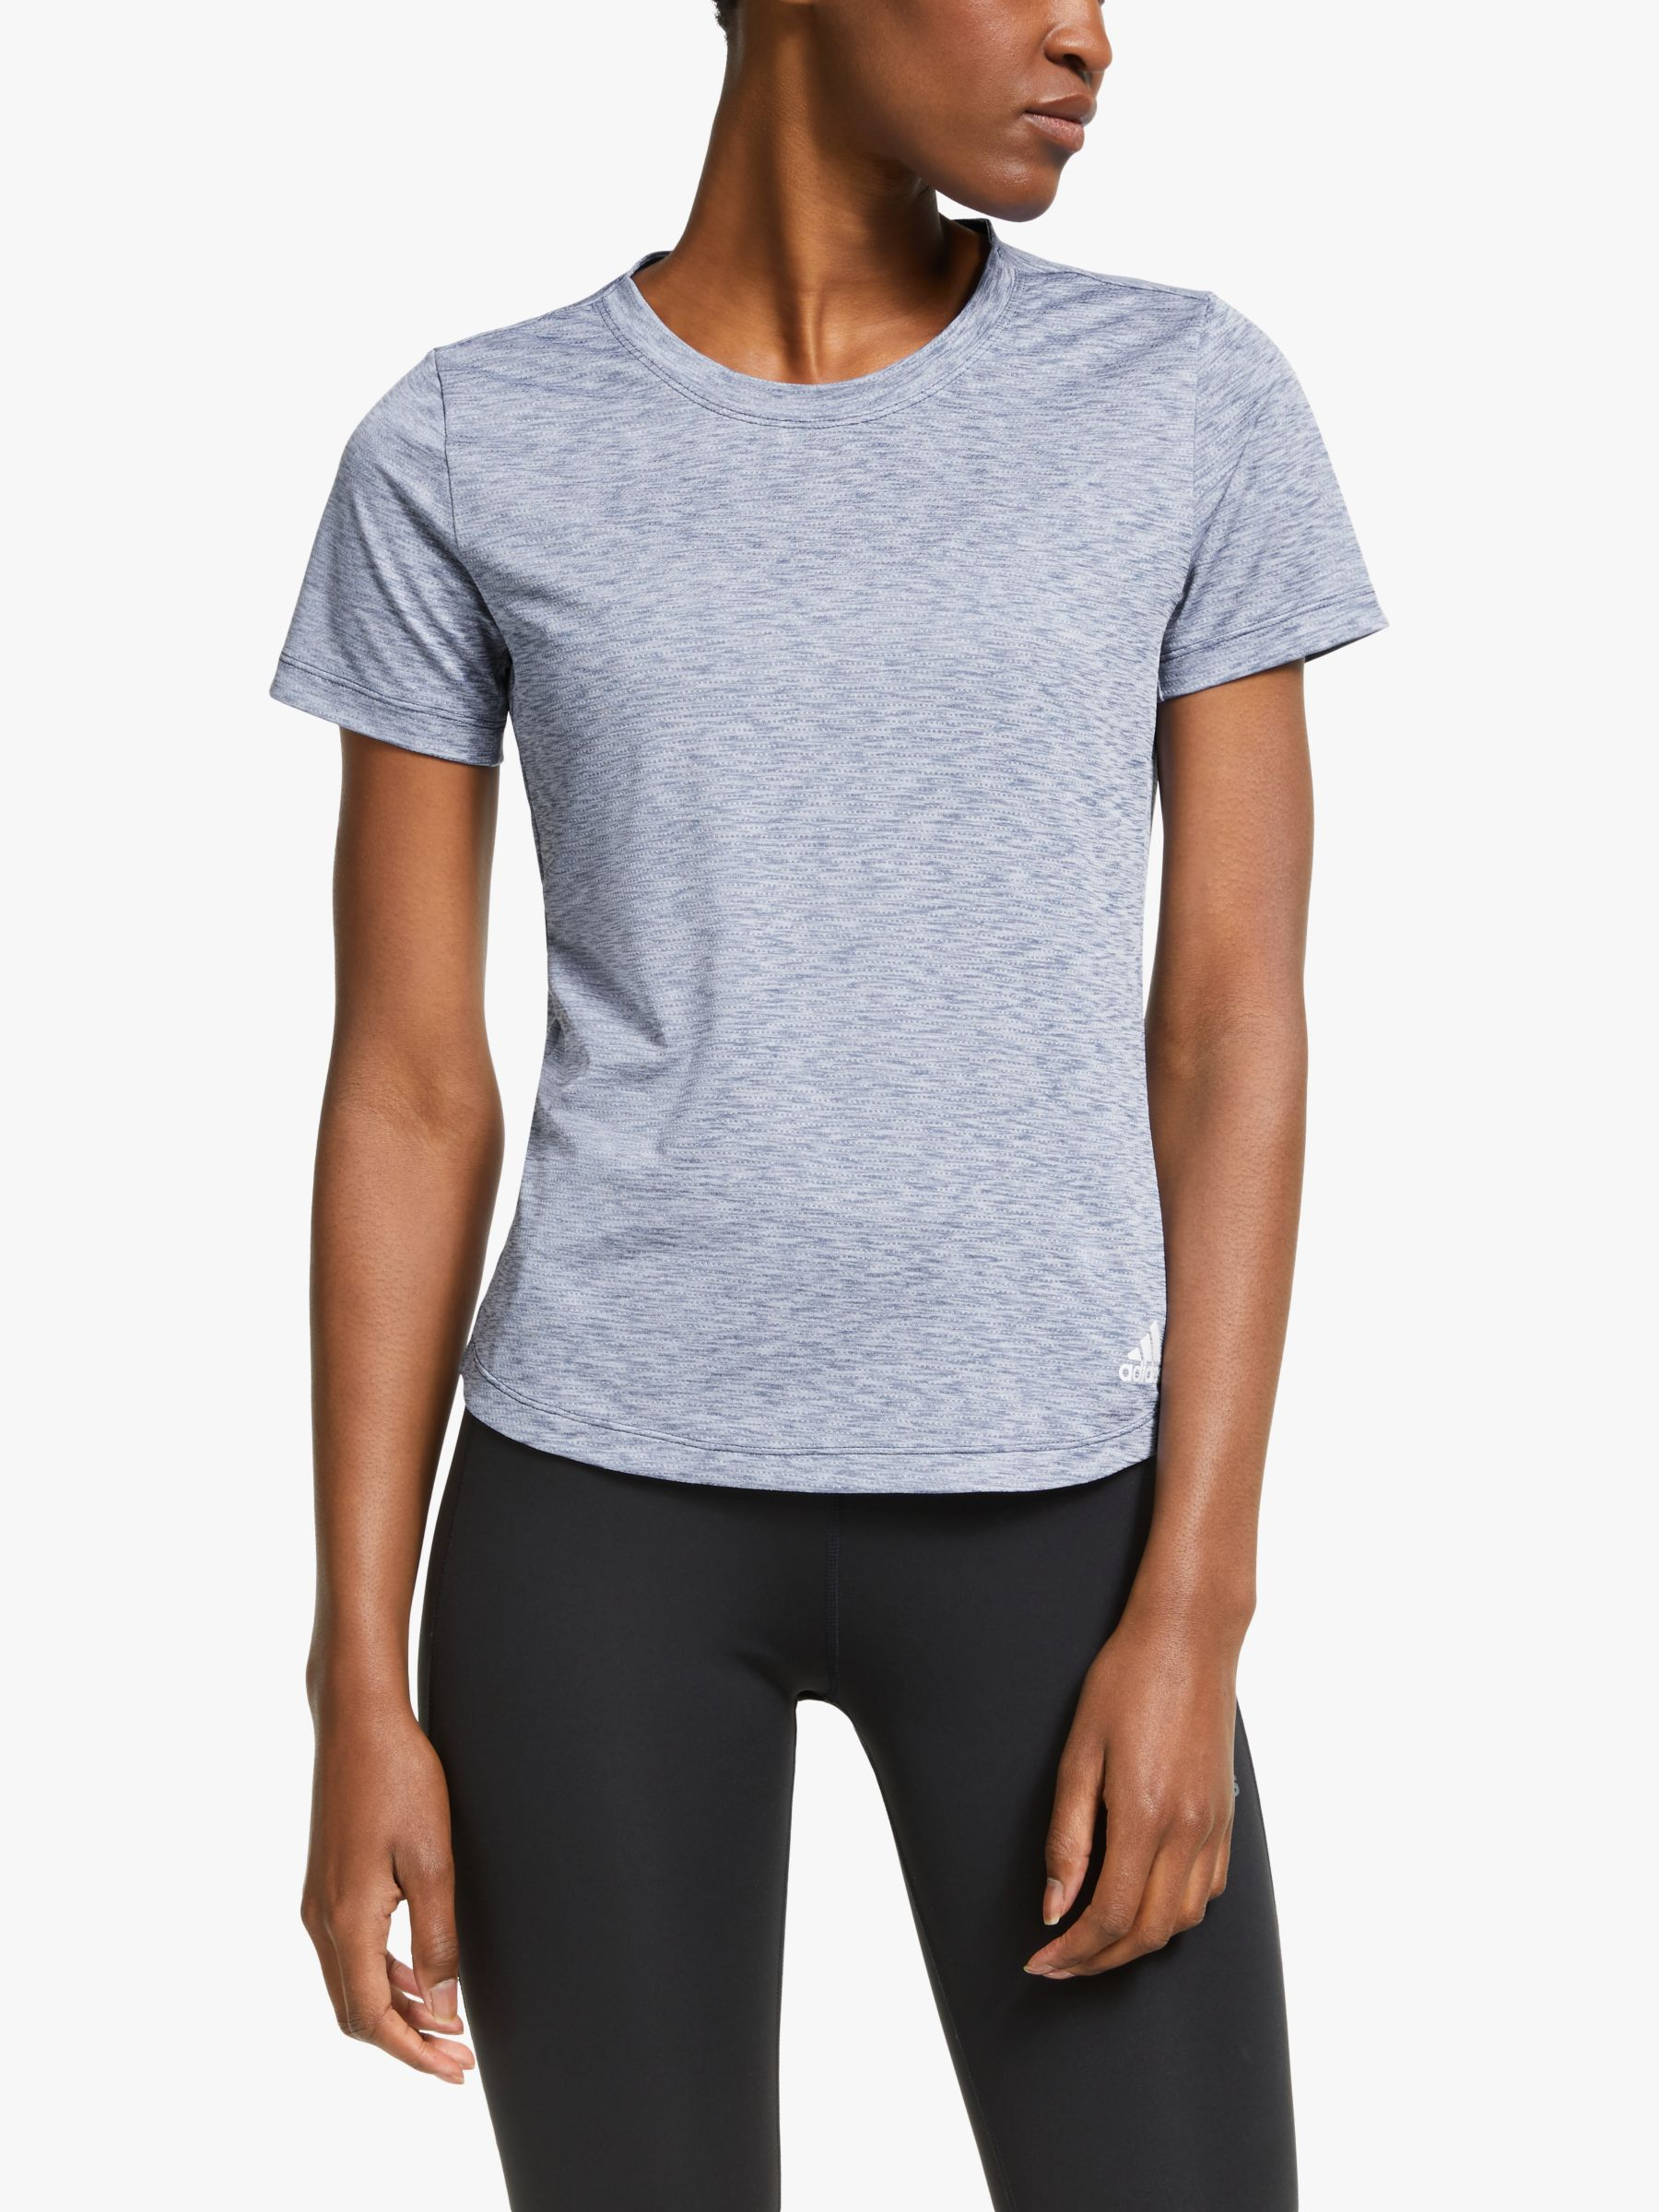 Adidas adidas Performance Training Top